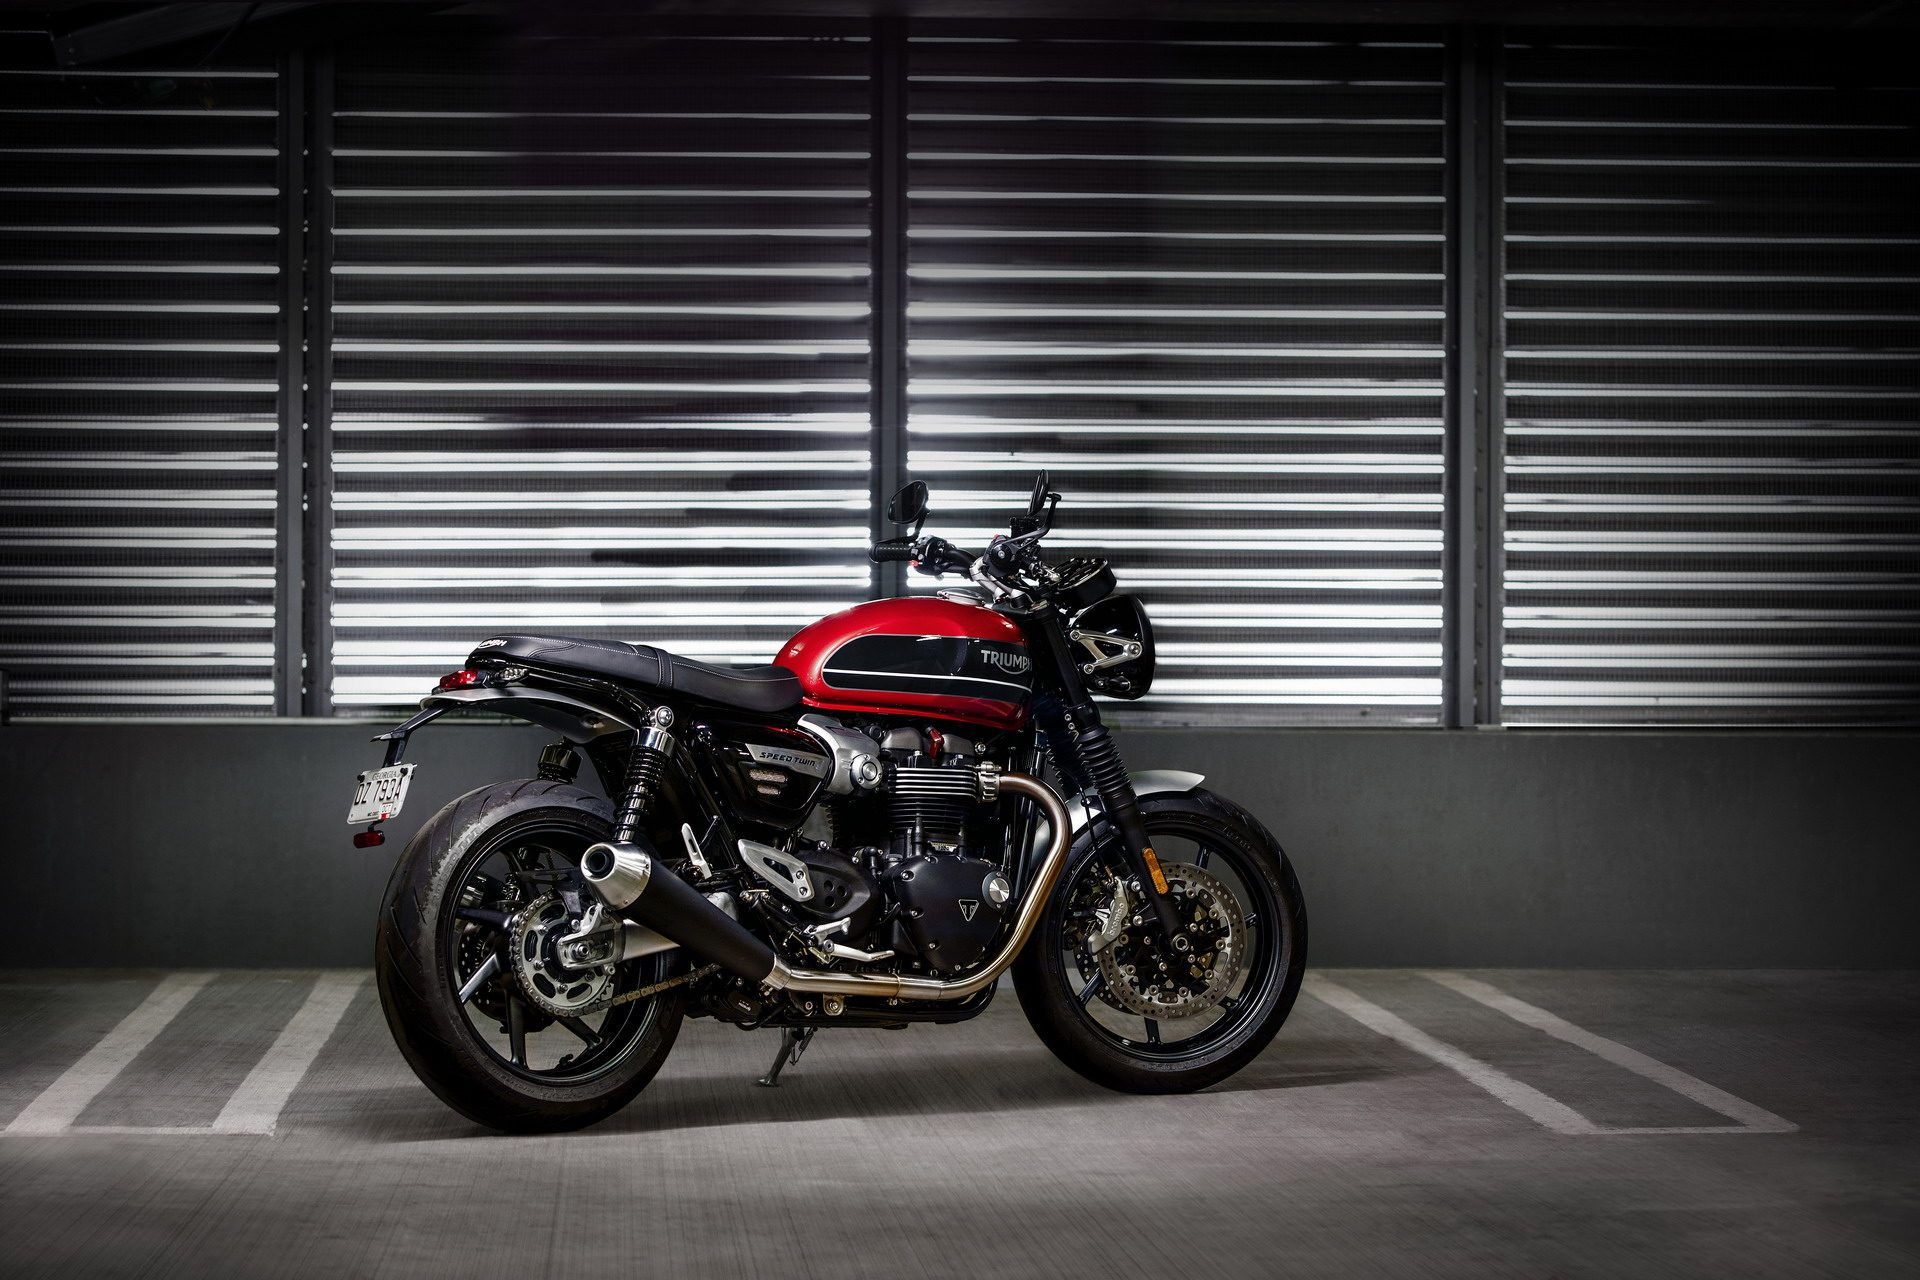 Nuova Triumph Speed Twin, tanta la tecnologia a bordo